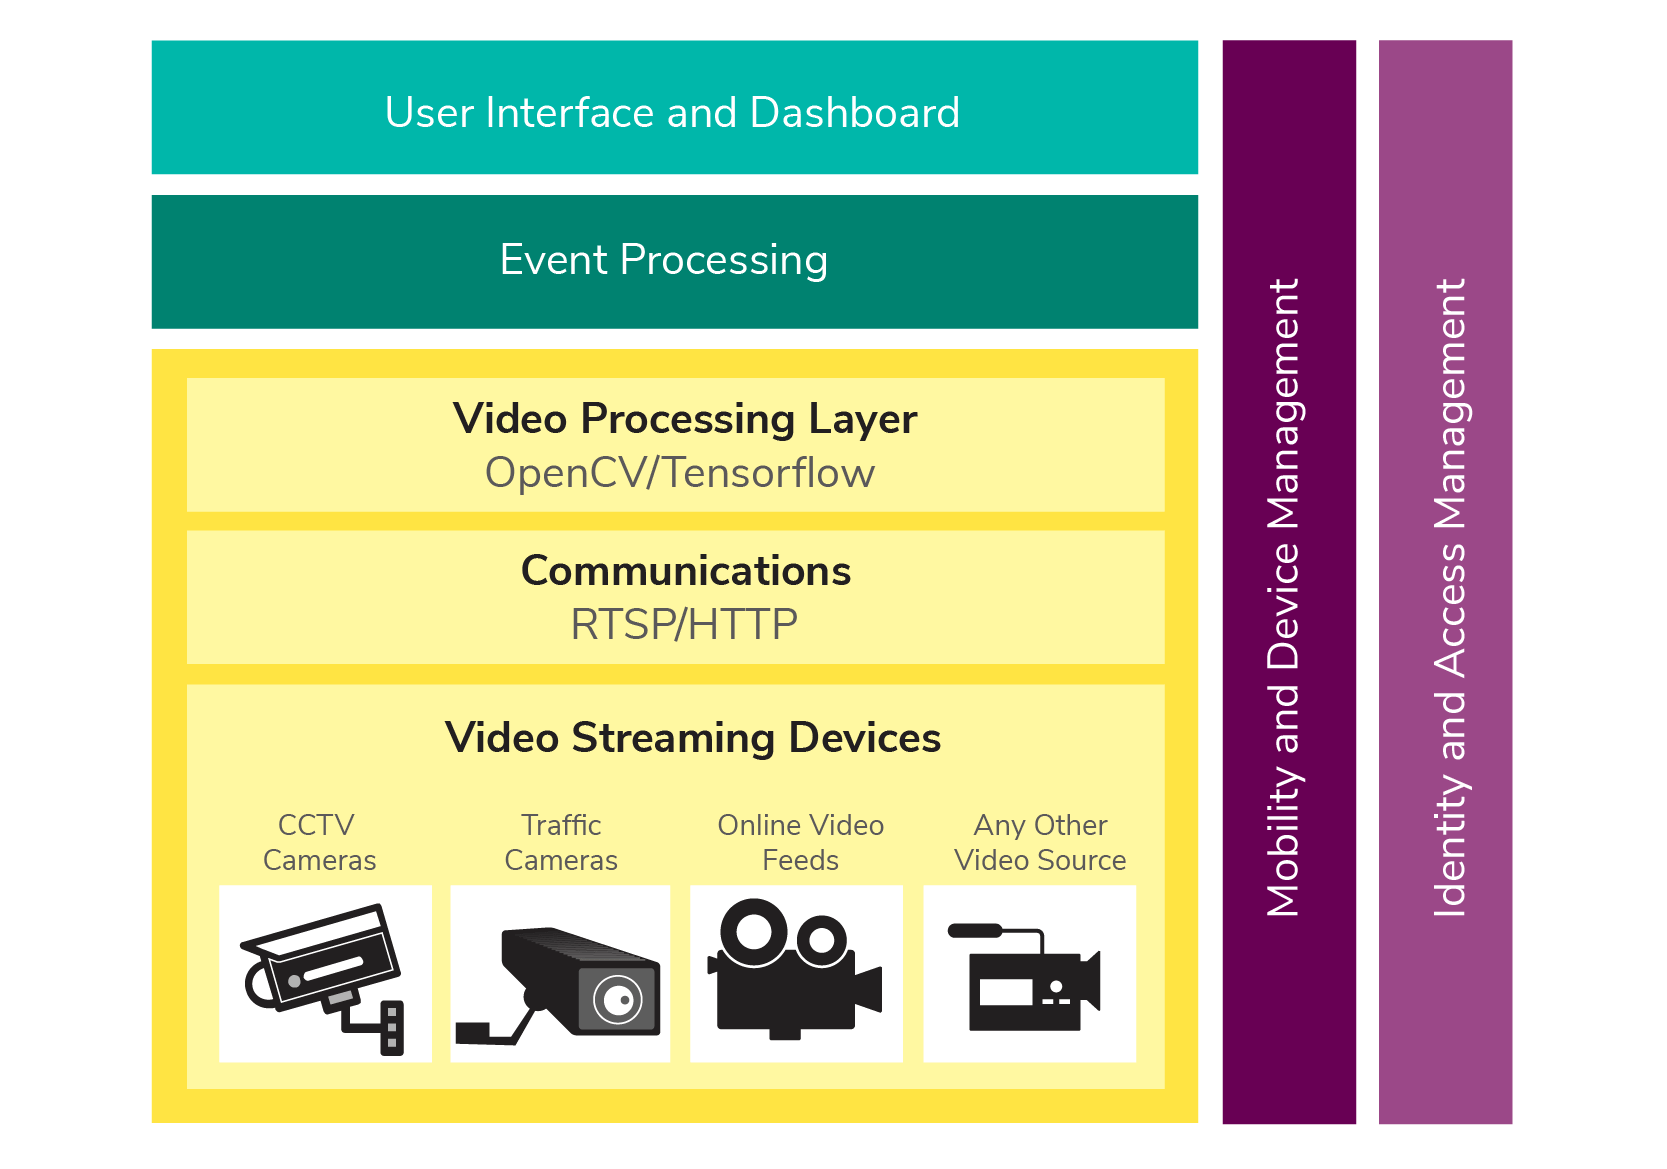 Figure 1: Reference Architecture for Video Analytics